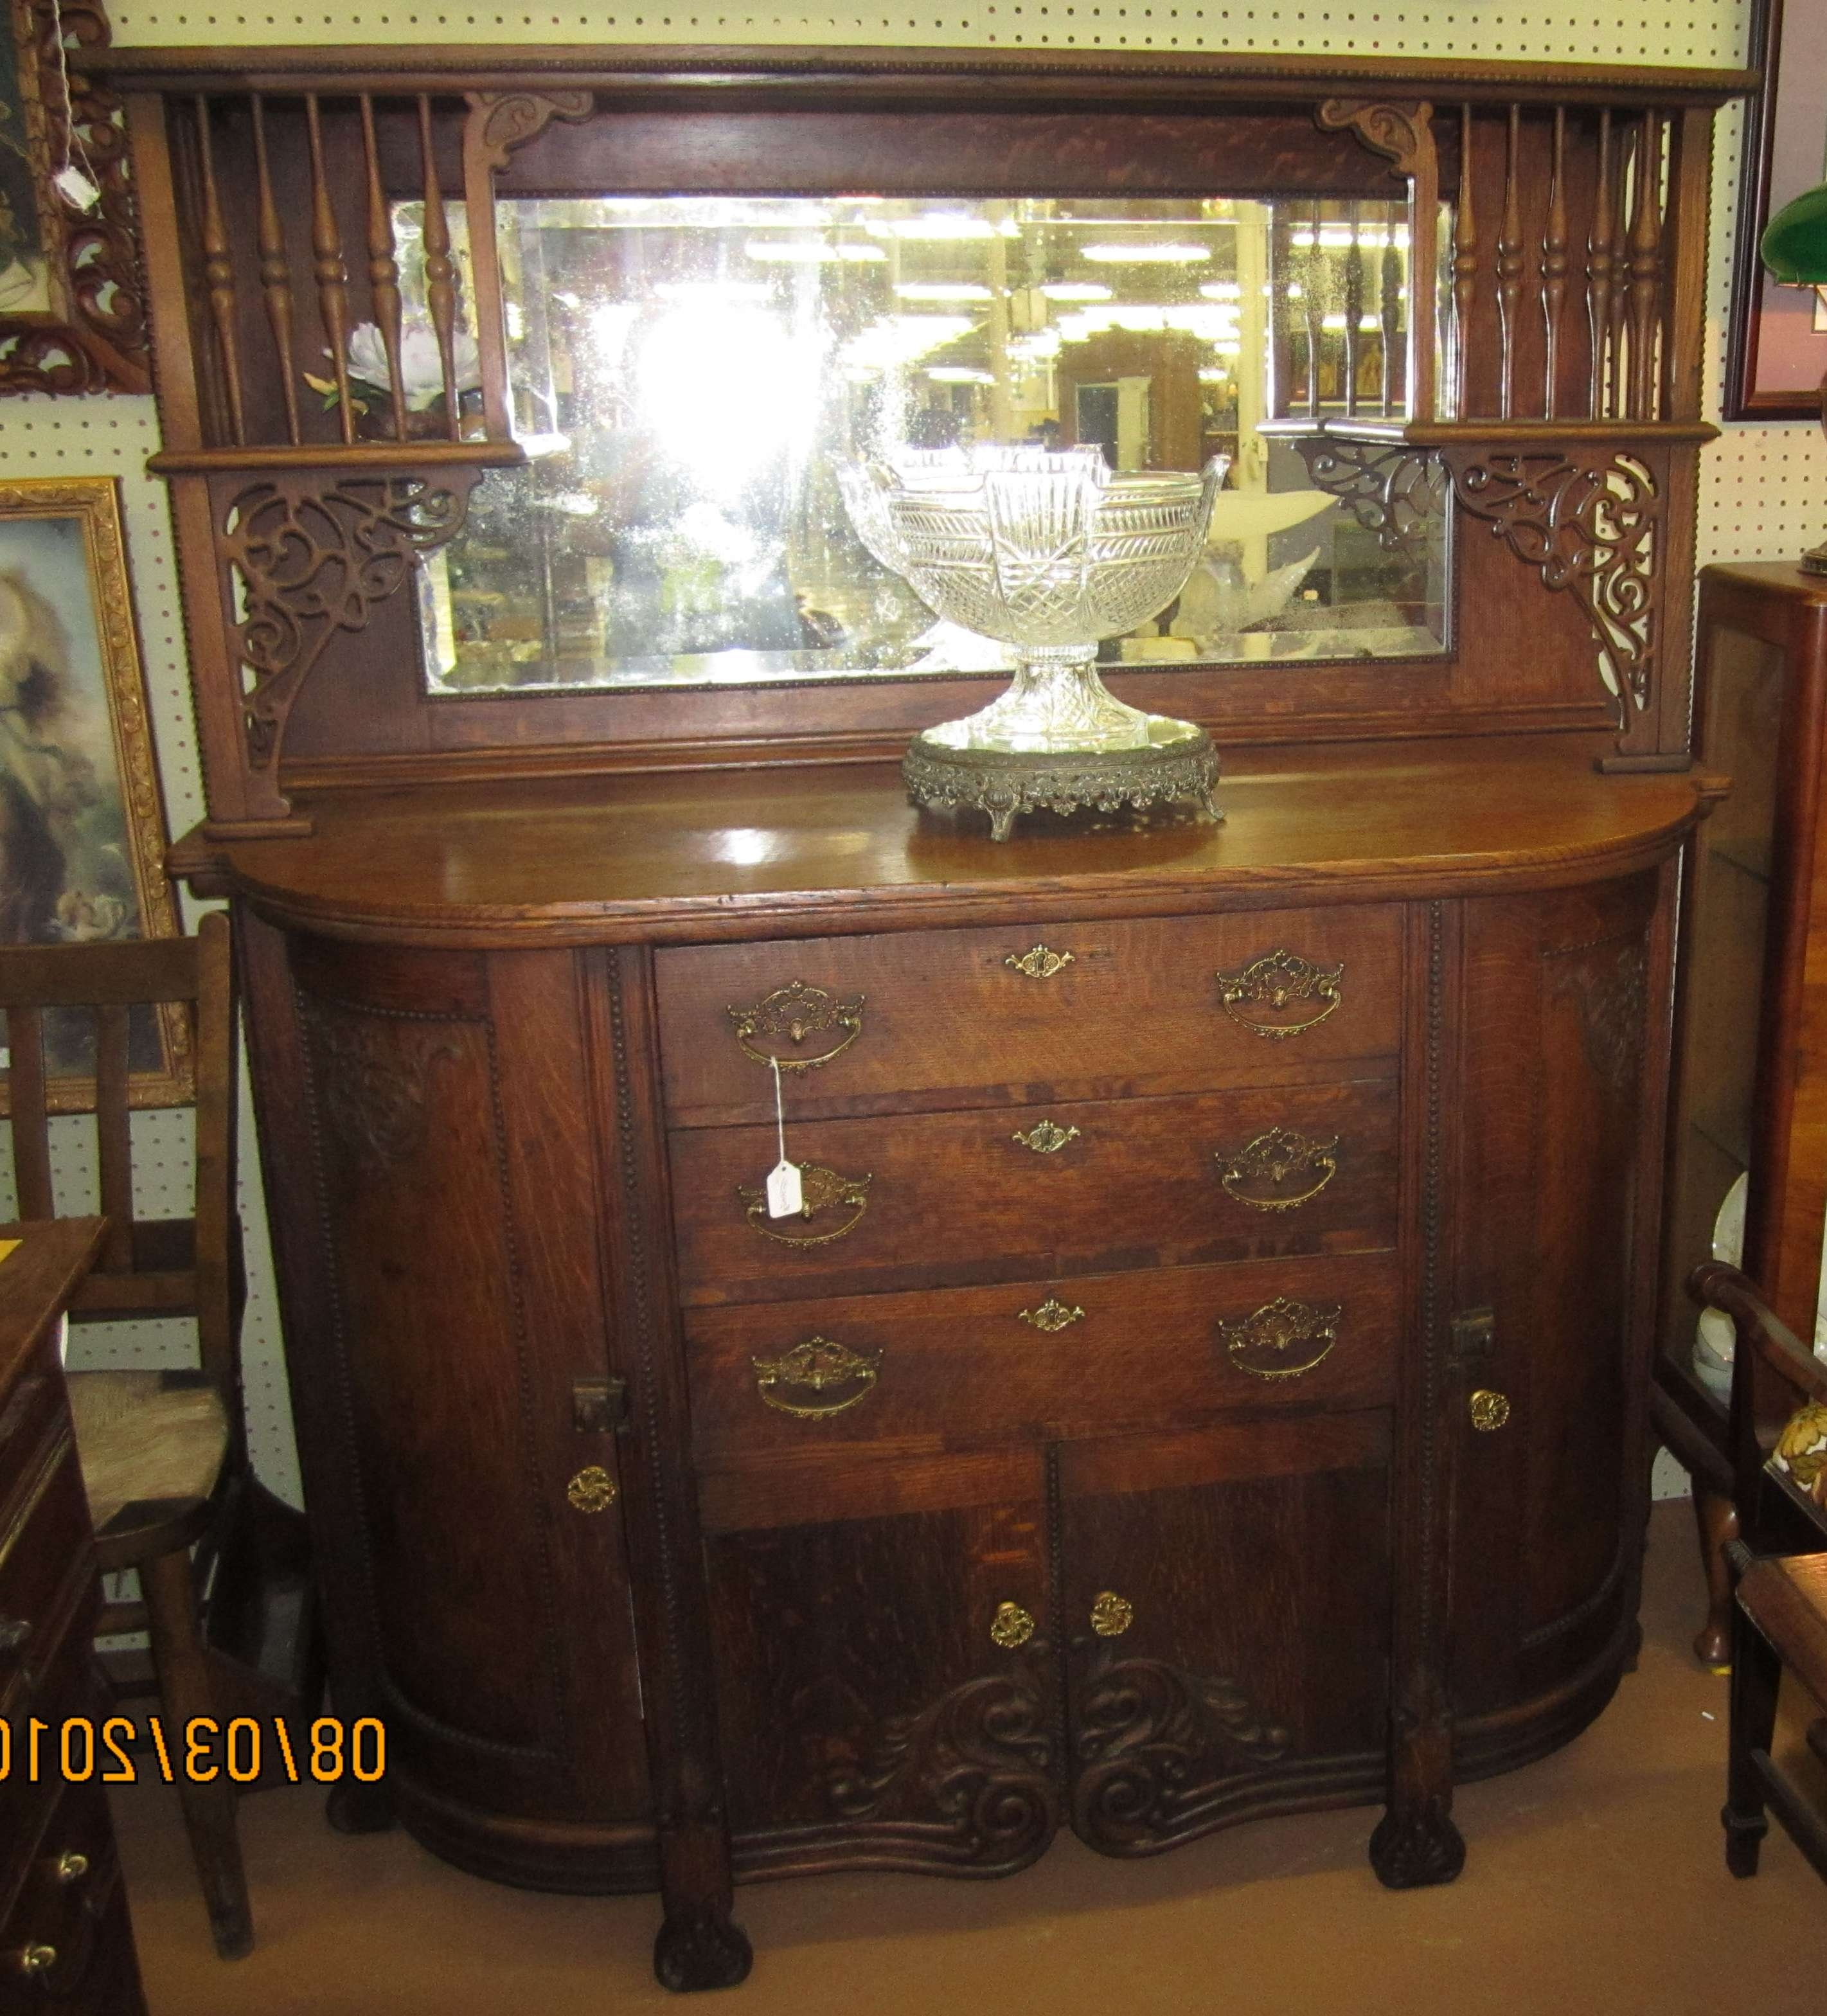 Antiques | Classifieds| Antiques » Antique Furniture » Antique Throughout Antique Buffet Sideboards (View 12 of 20)